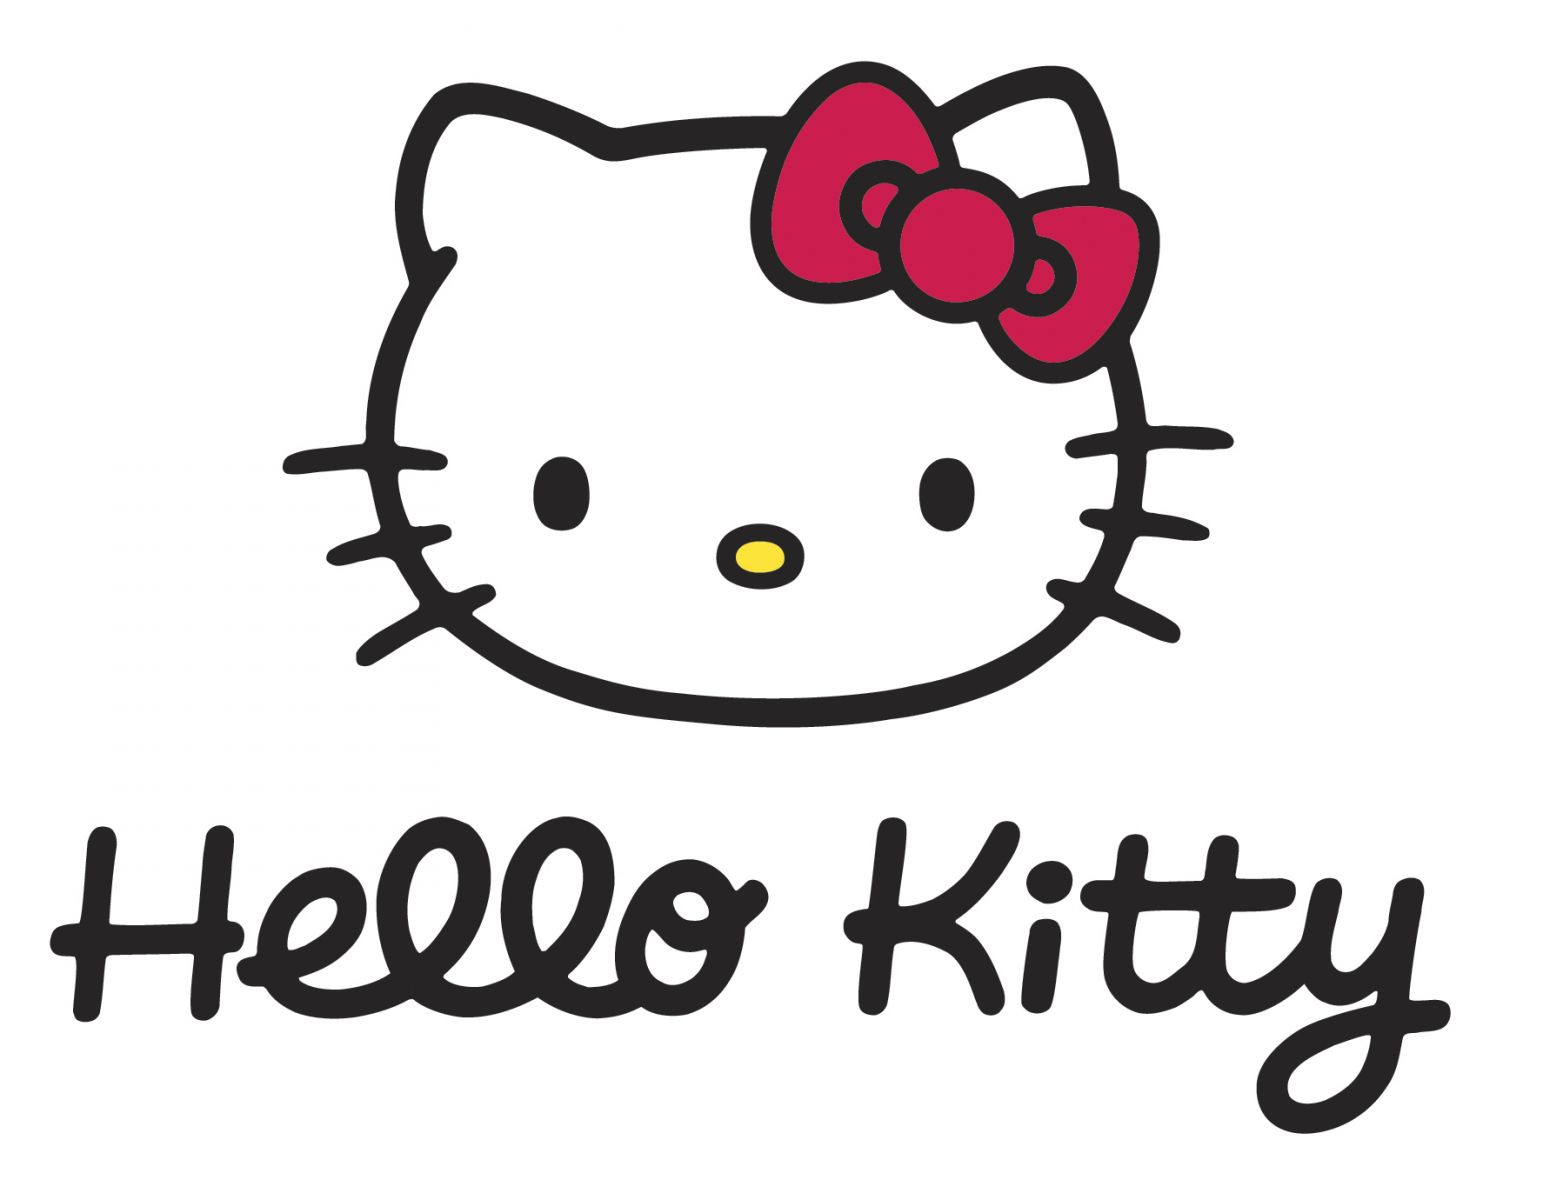 Hello kitty stuff good for wholesale to earn money online